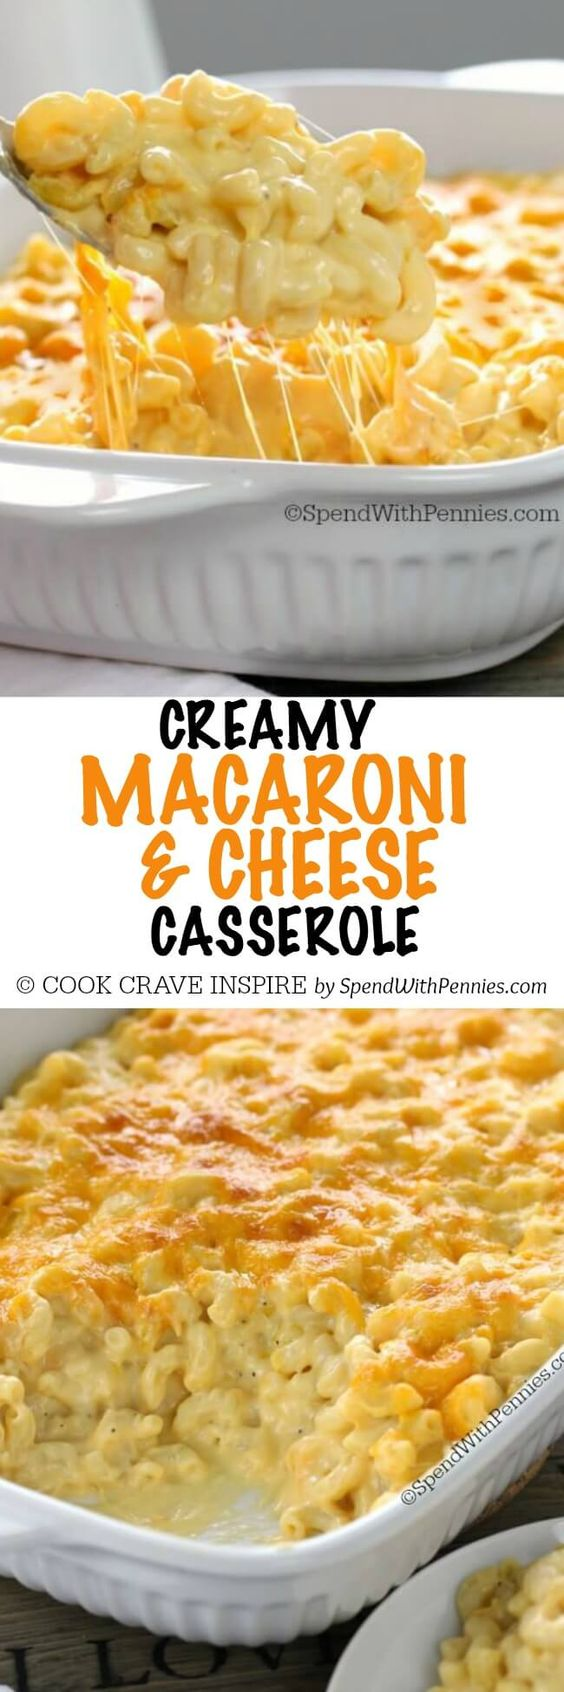 How To Bake Mac And Cheese From Scratch